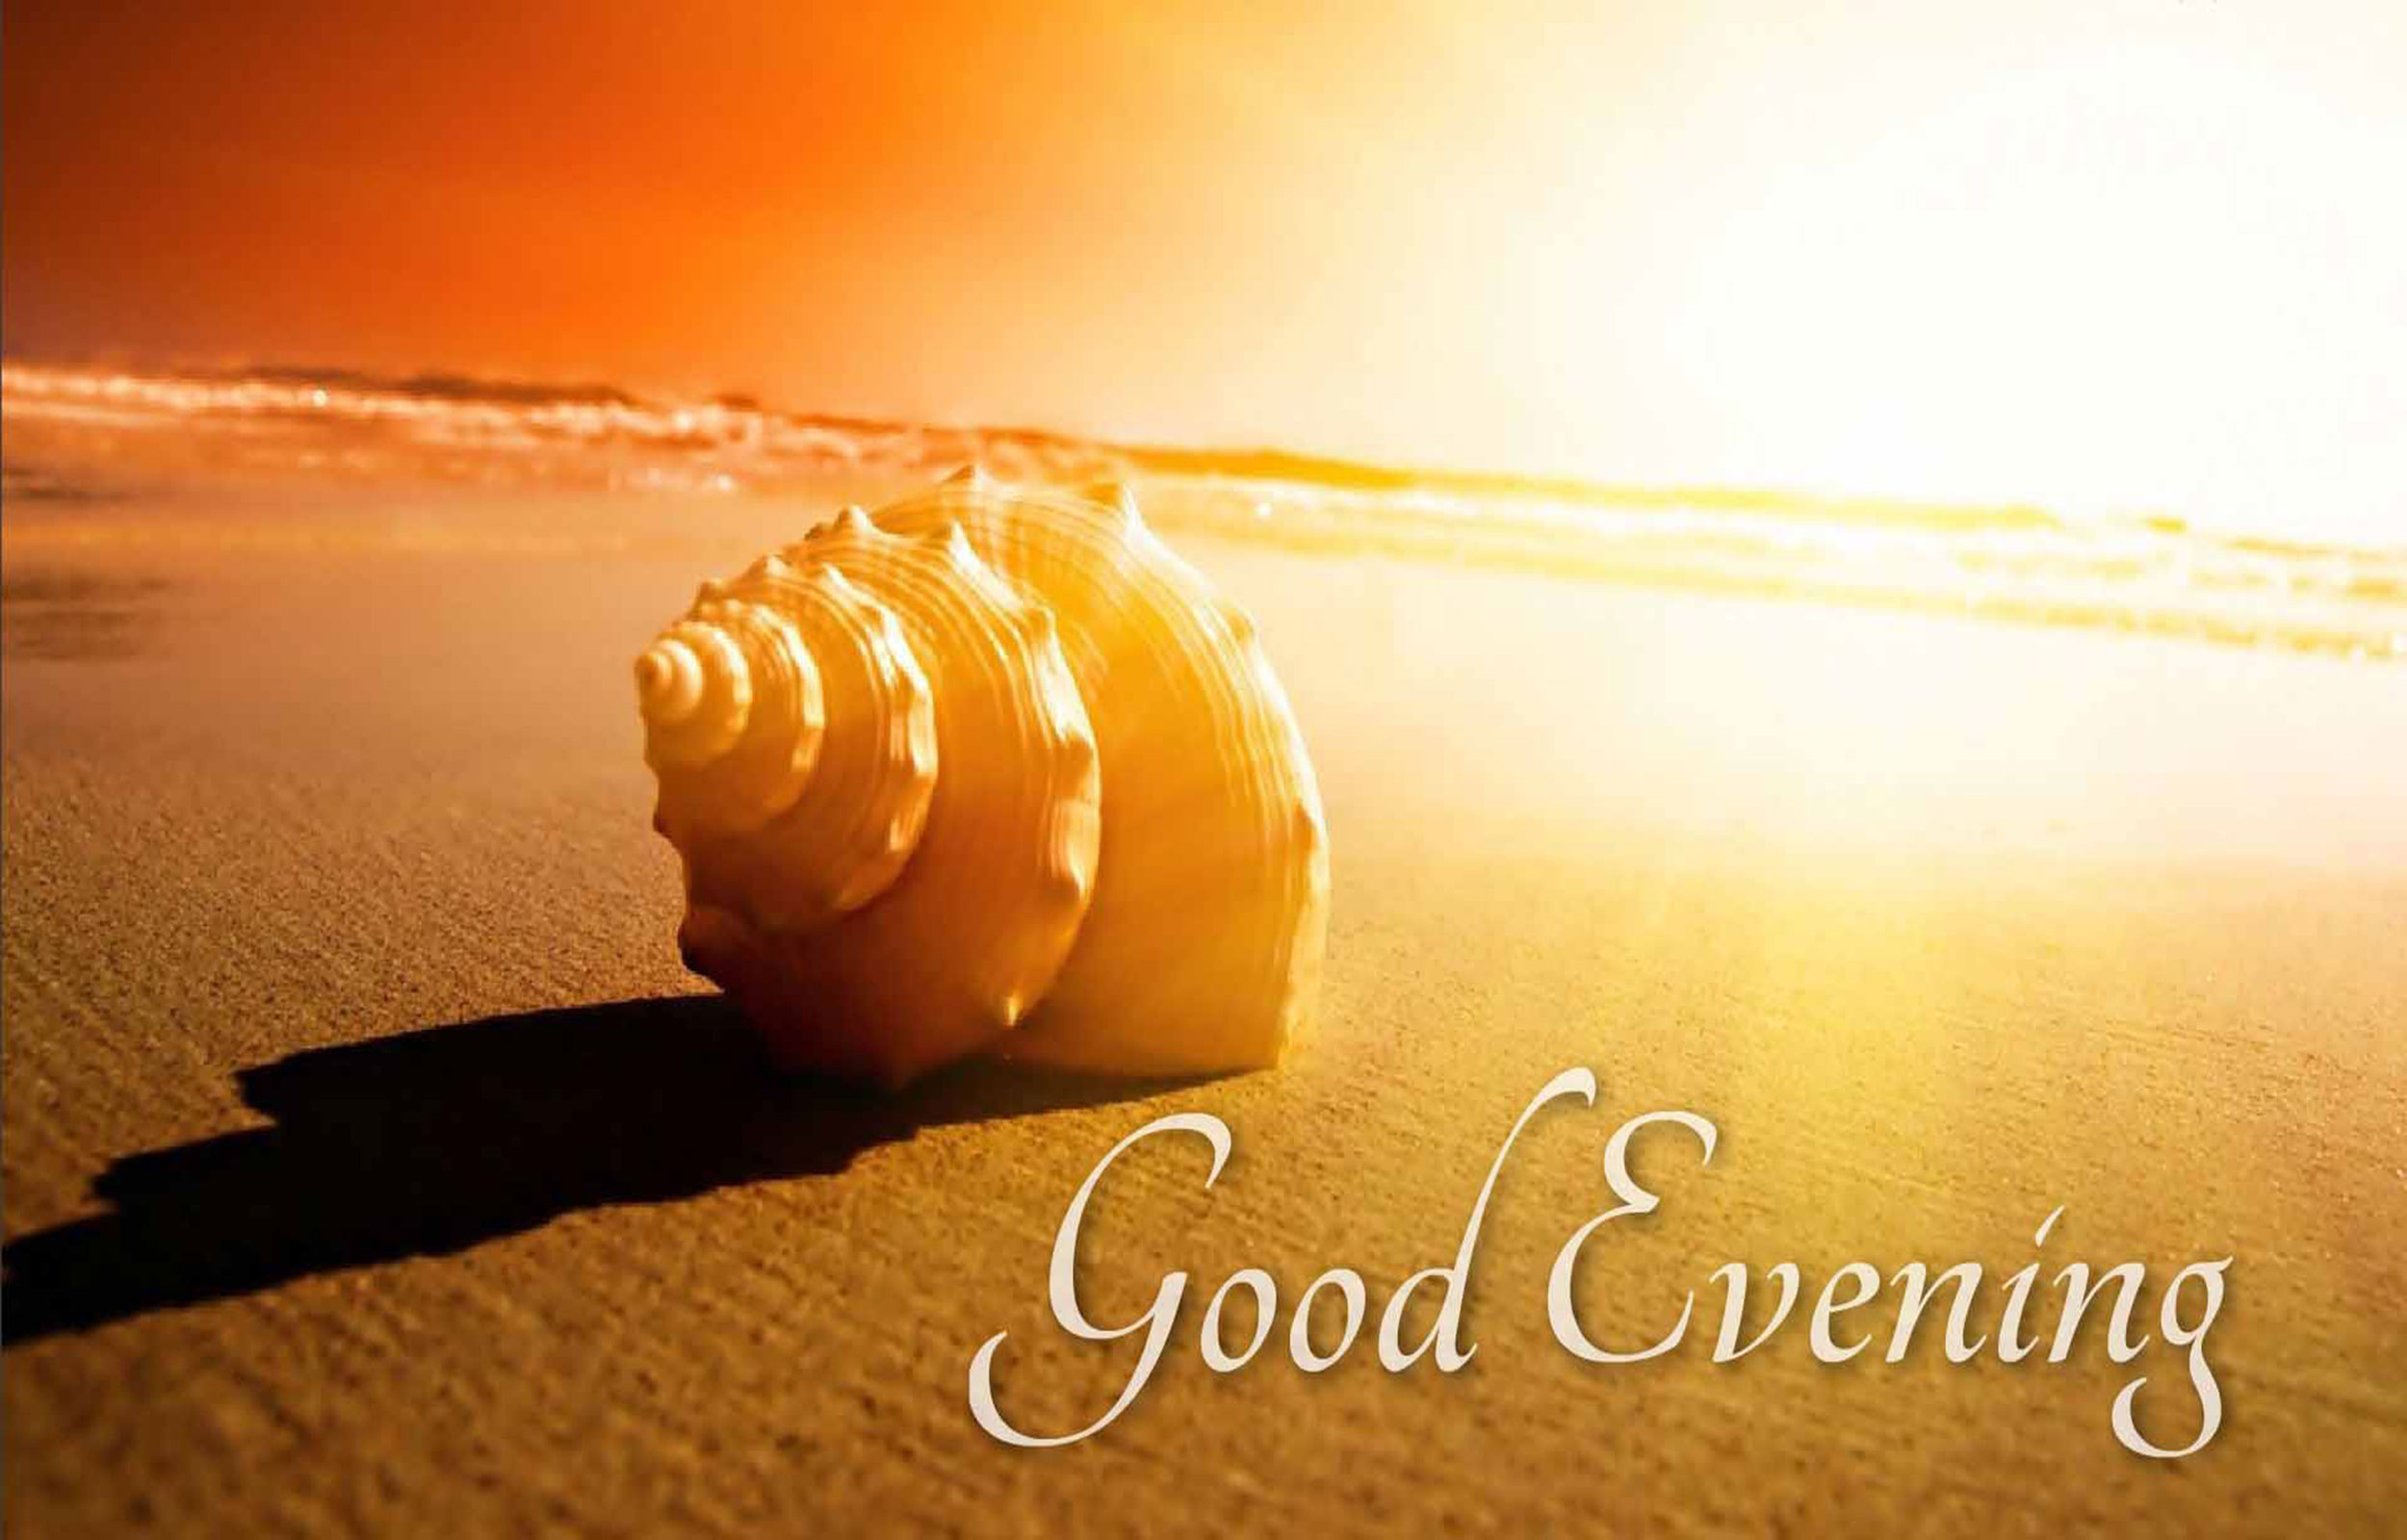 good evening wish sea shell